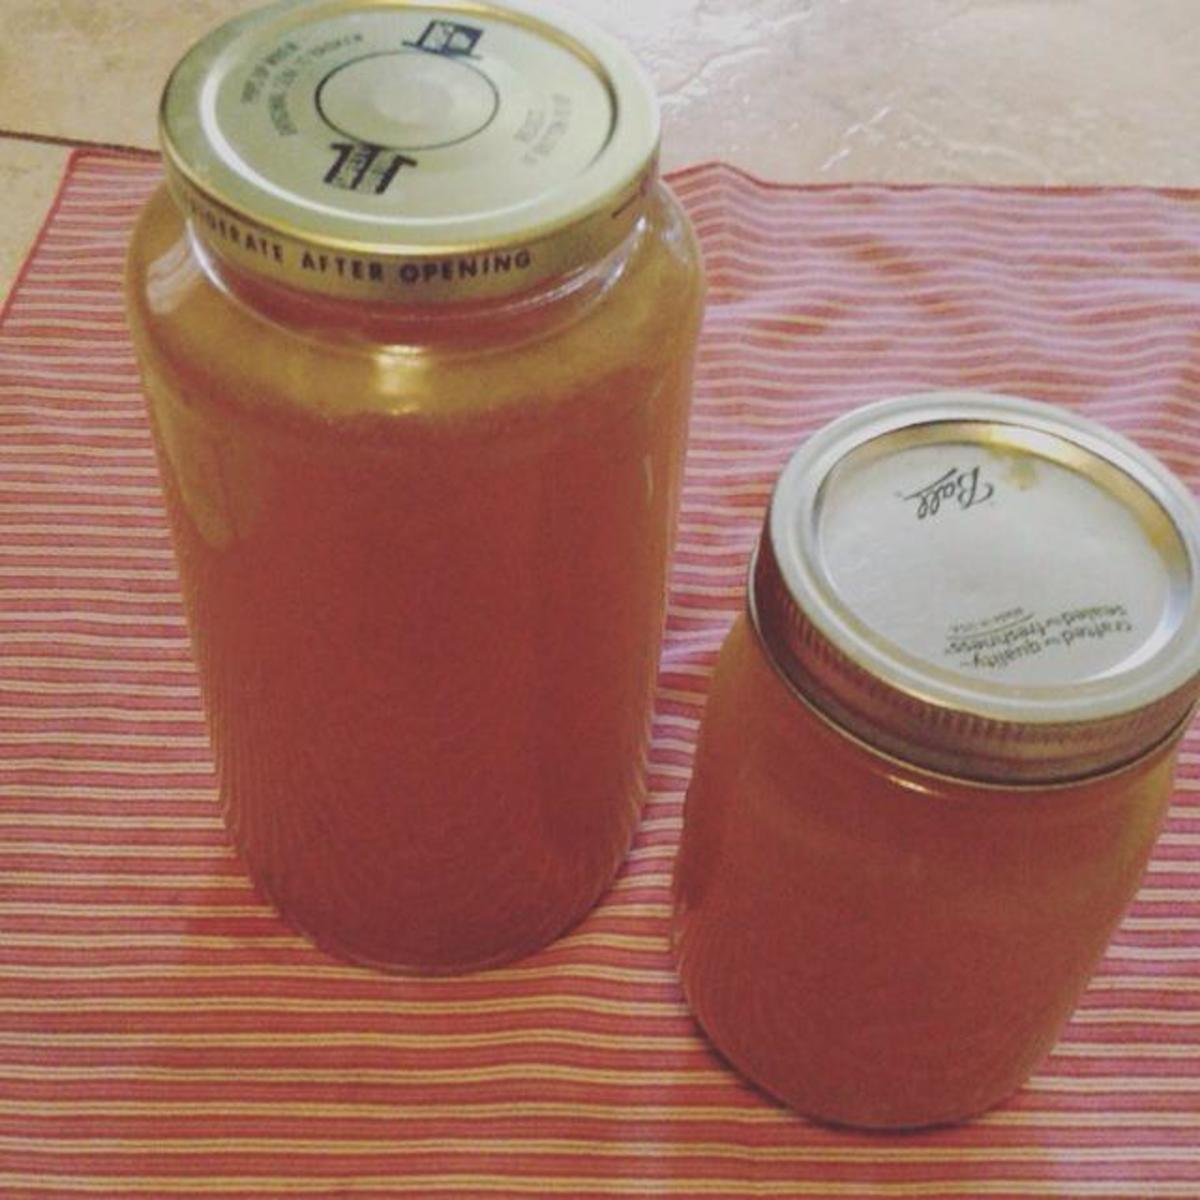 Your broth should have a beautiful golden color when ready.  Simply store in mason jars in the freezer, or for a few days in the fridge, if you know it's not going to be around for very long.